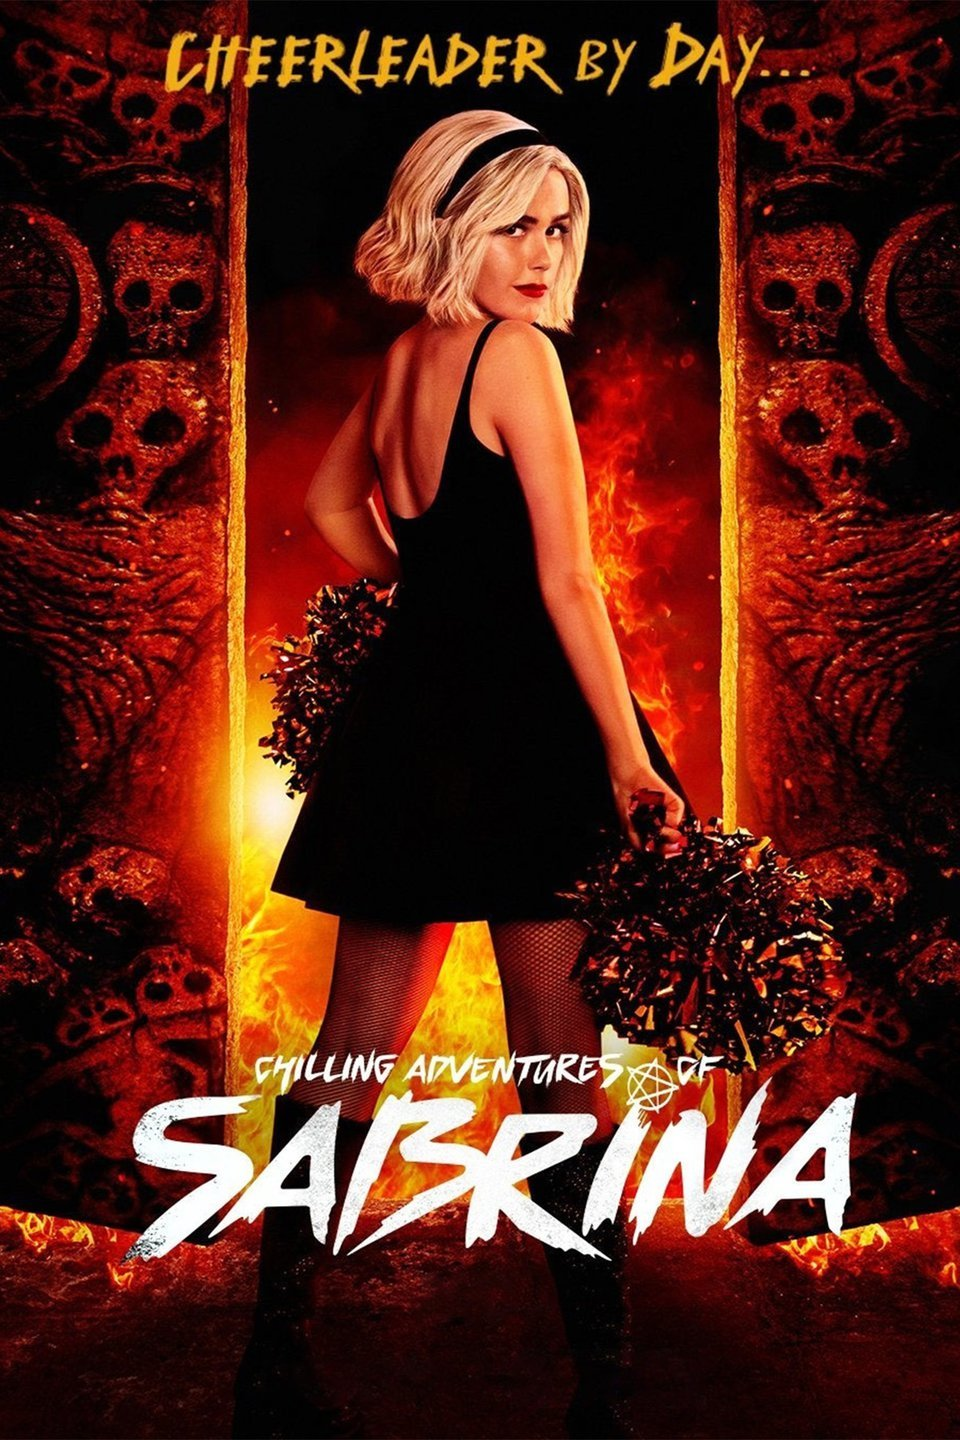 Chilling Adventures of Sabrina (2018 series)